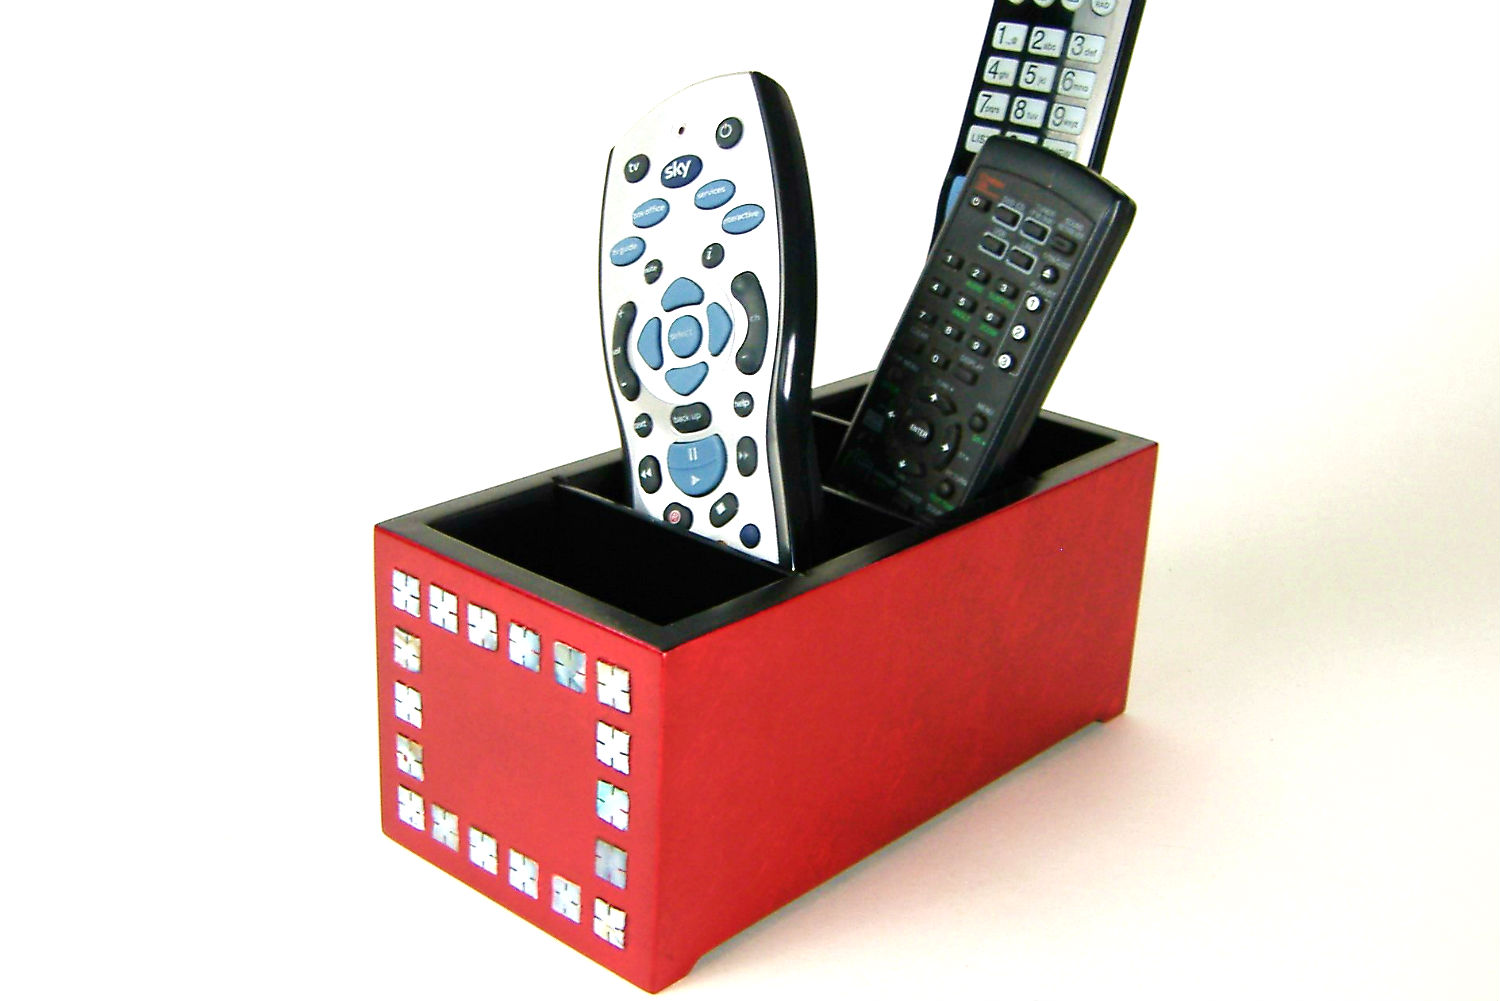 Metallic red wooden lacquer remote control box with remotes